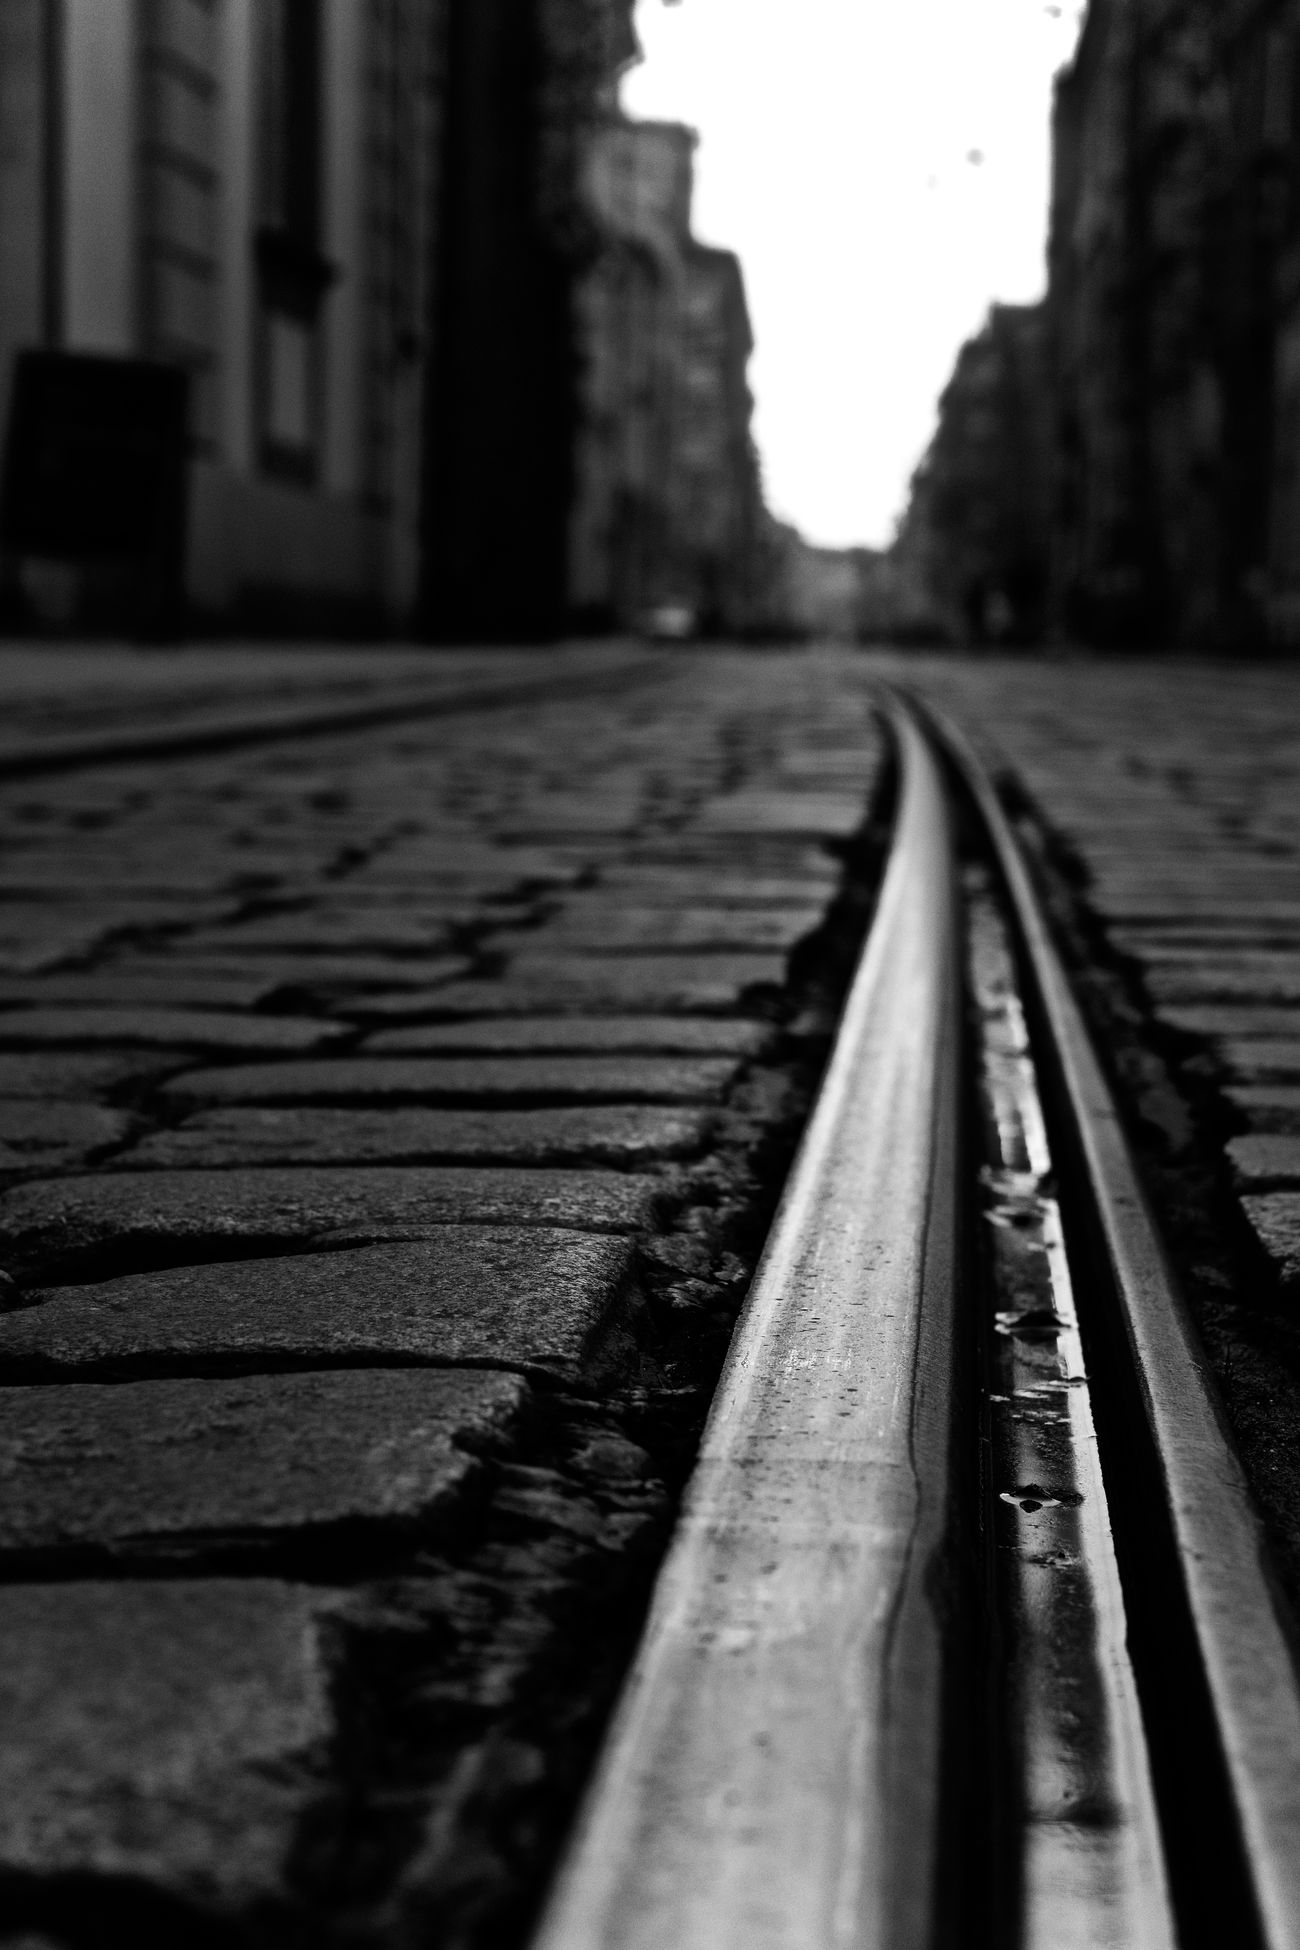 Architecture Black And White Building Exterior Built Structure Cobblestone Day Nature Nikon No People Outdoors Railroad Track Road Street Streetphotography Surface Level The Way Forward Transportation Urban